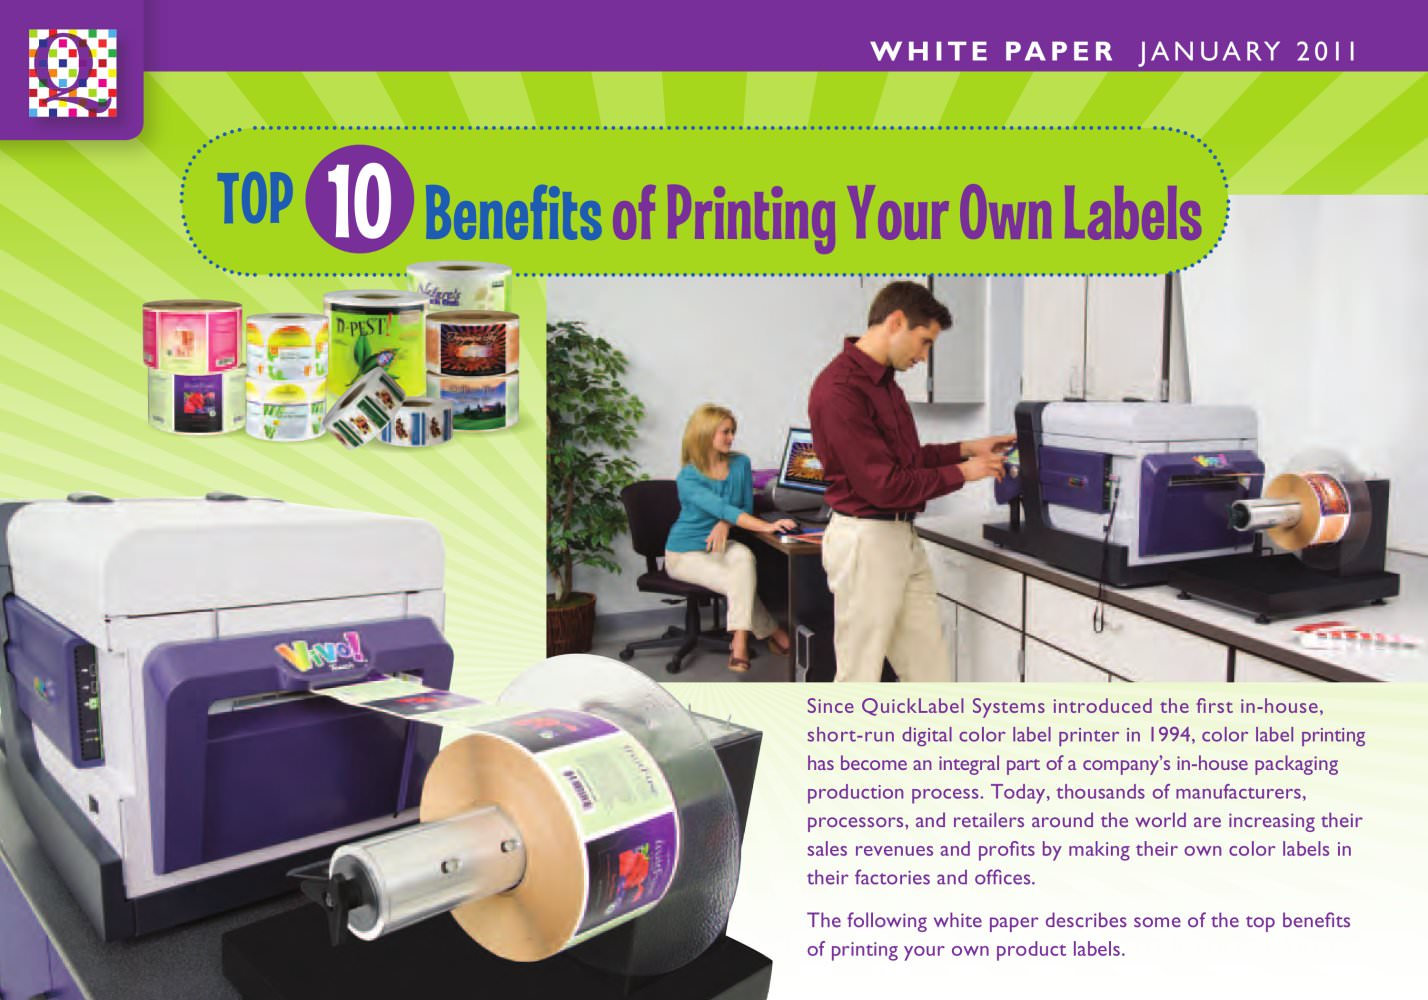 The Top 10 Benefits Of Printing Your Own Labels